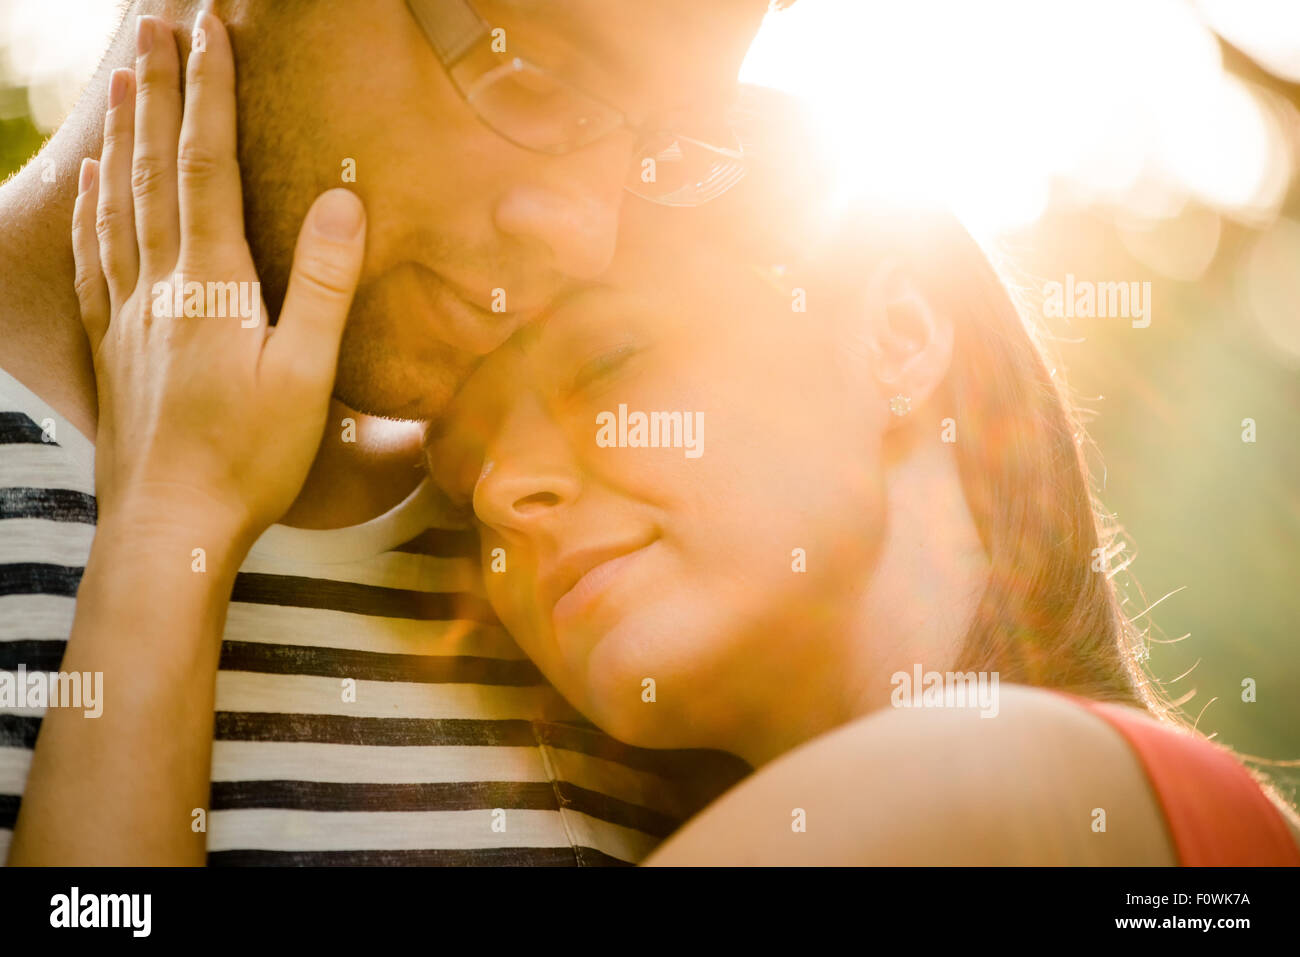 Intimate moments - young couple embracing and hugging in nature - Stock Image